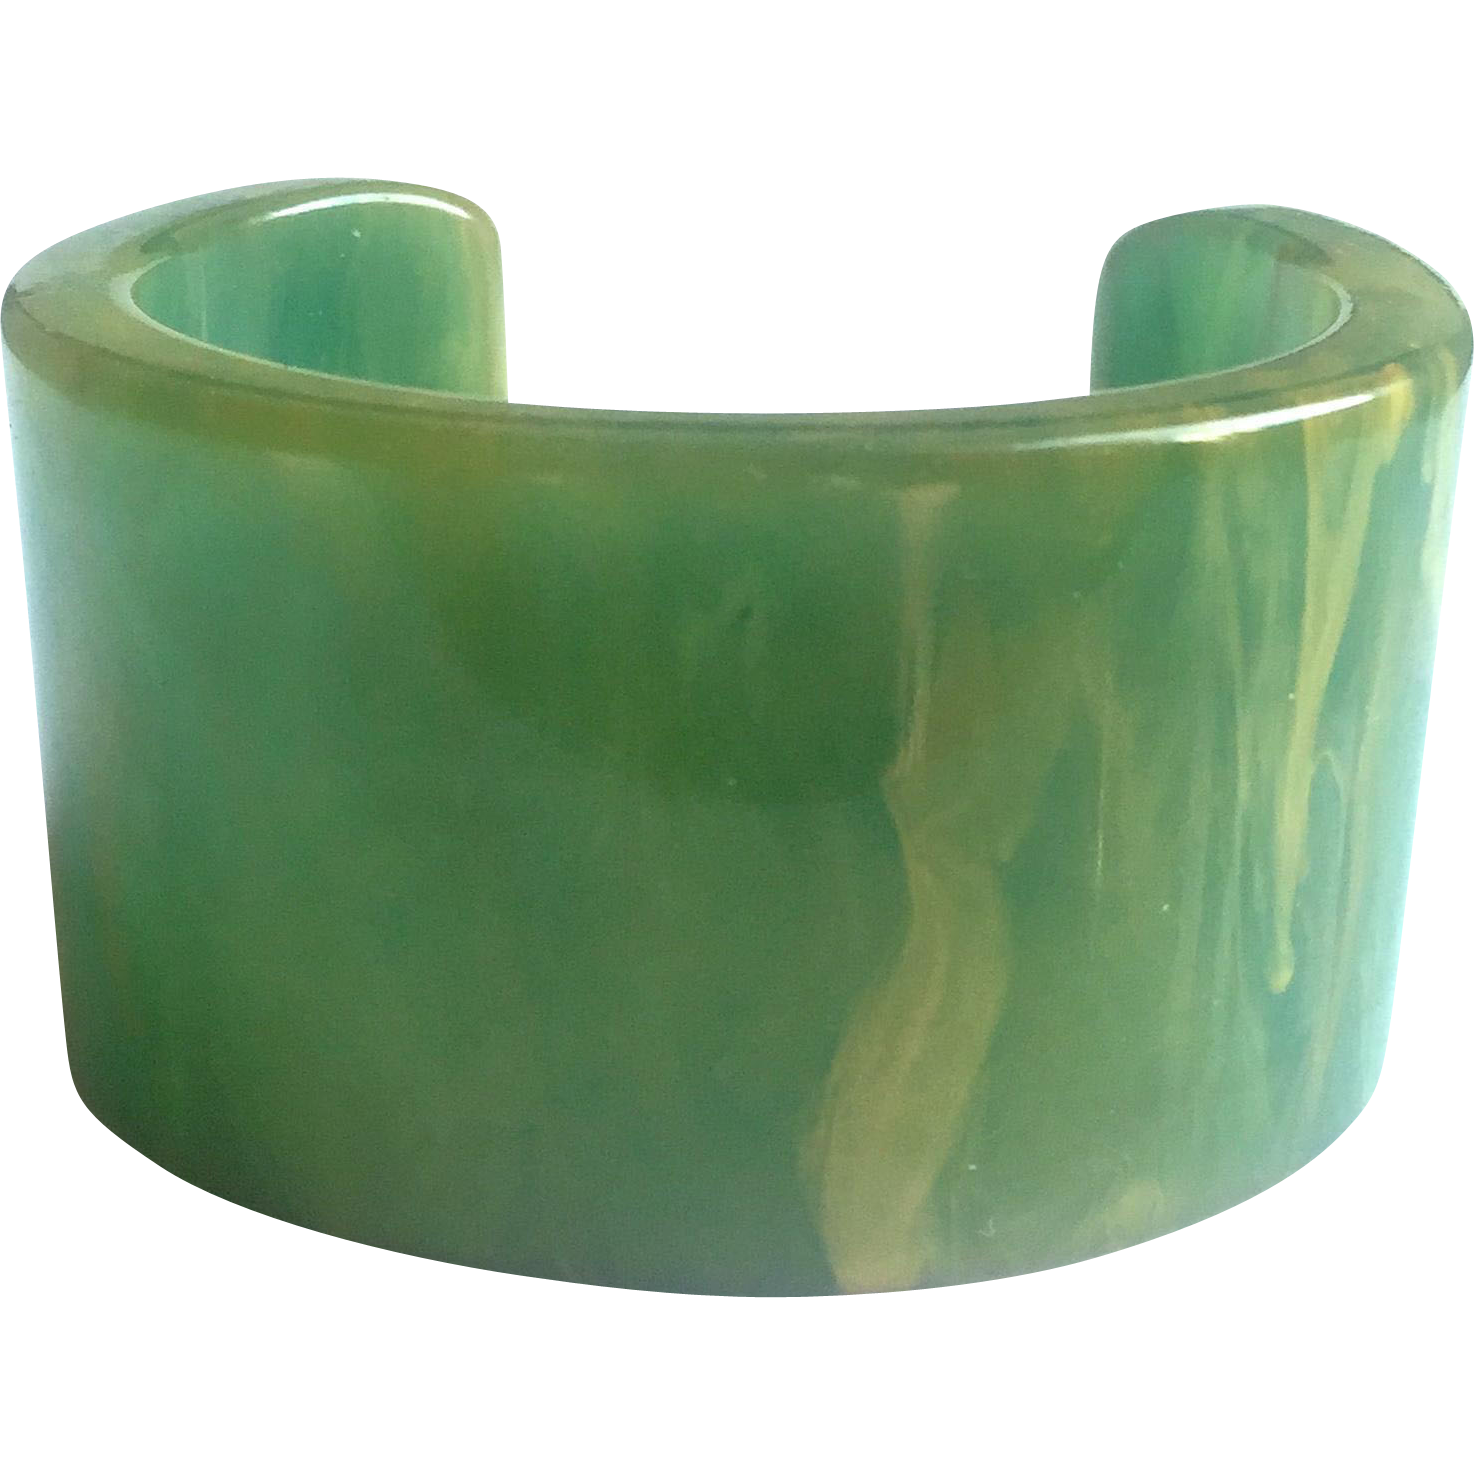 Bakelite Marbled and Translucent Cuff Bracelet